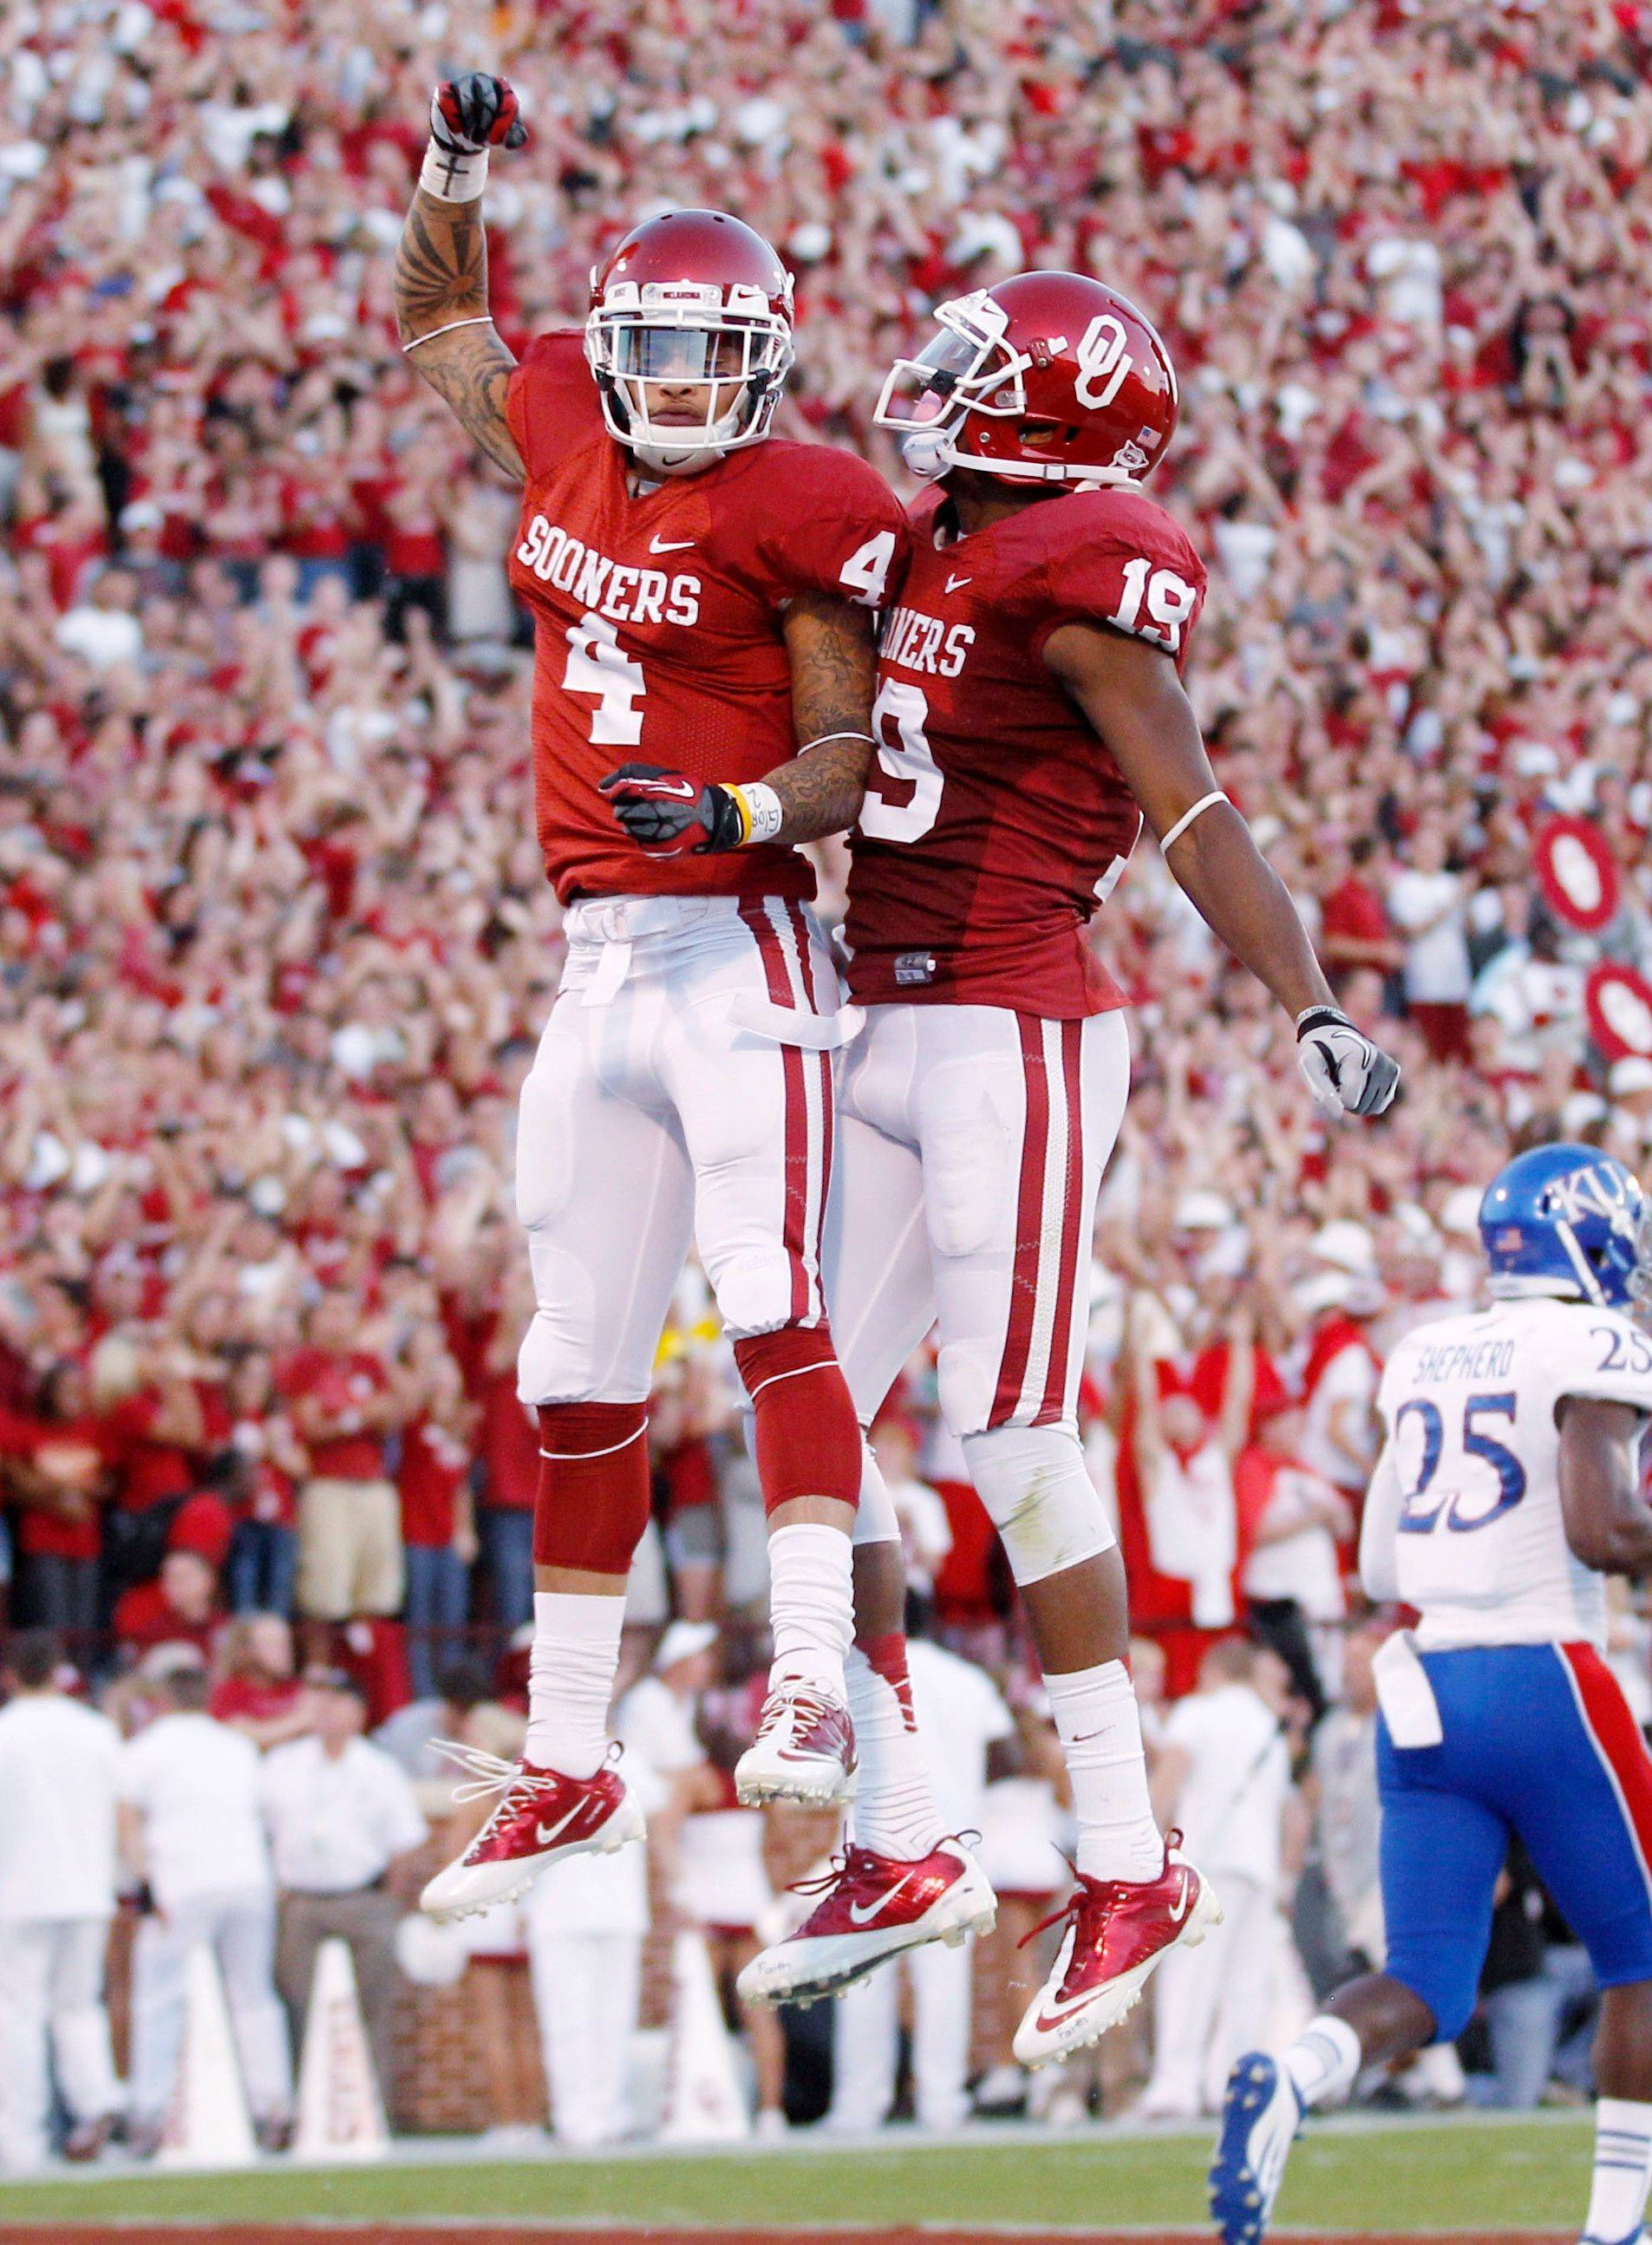 Oklahoma wide receivers Kenny Stills (4) and Justin Brown (19) celebrate following Stills' touchdown against Kansas on Saturday.